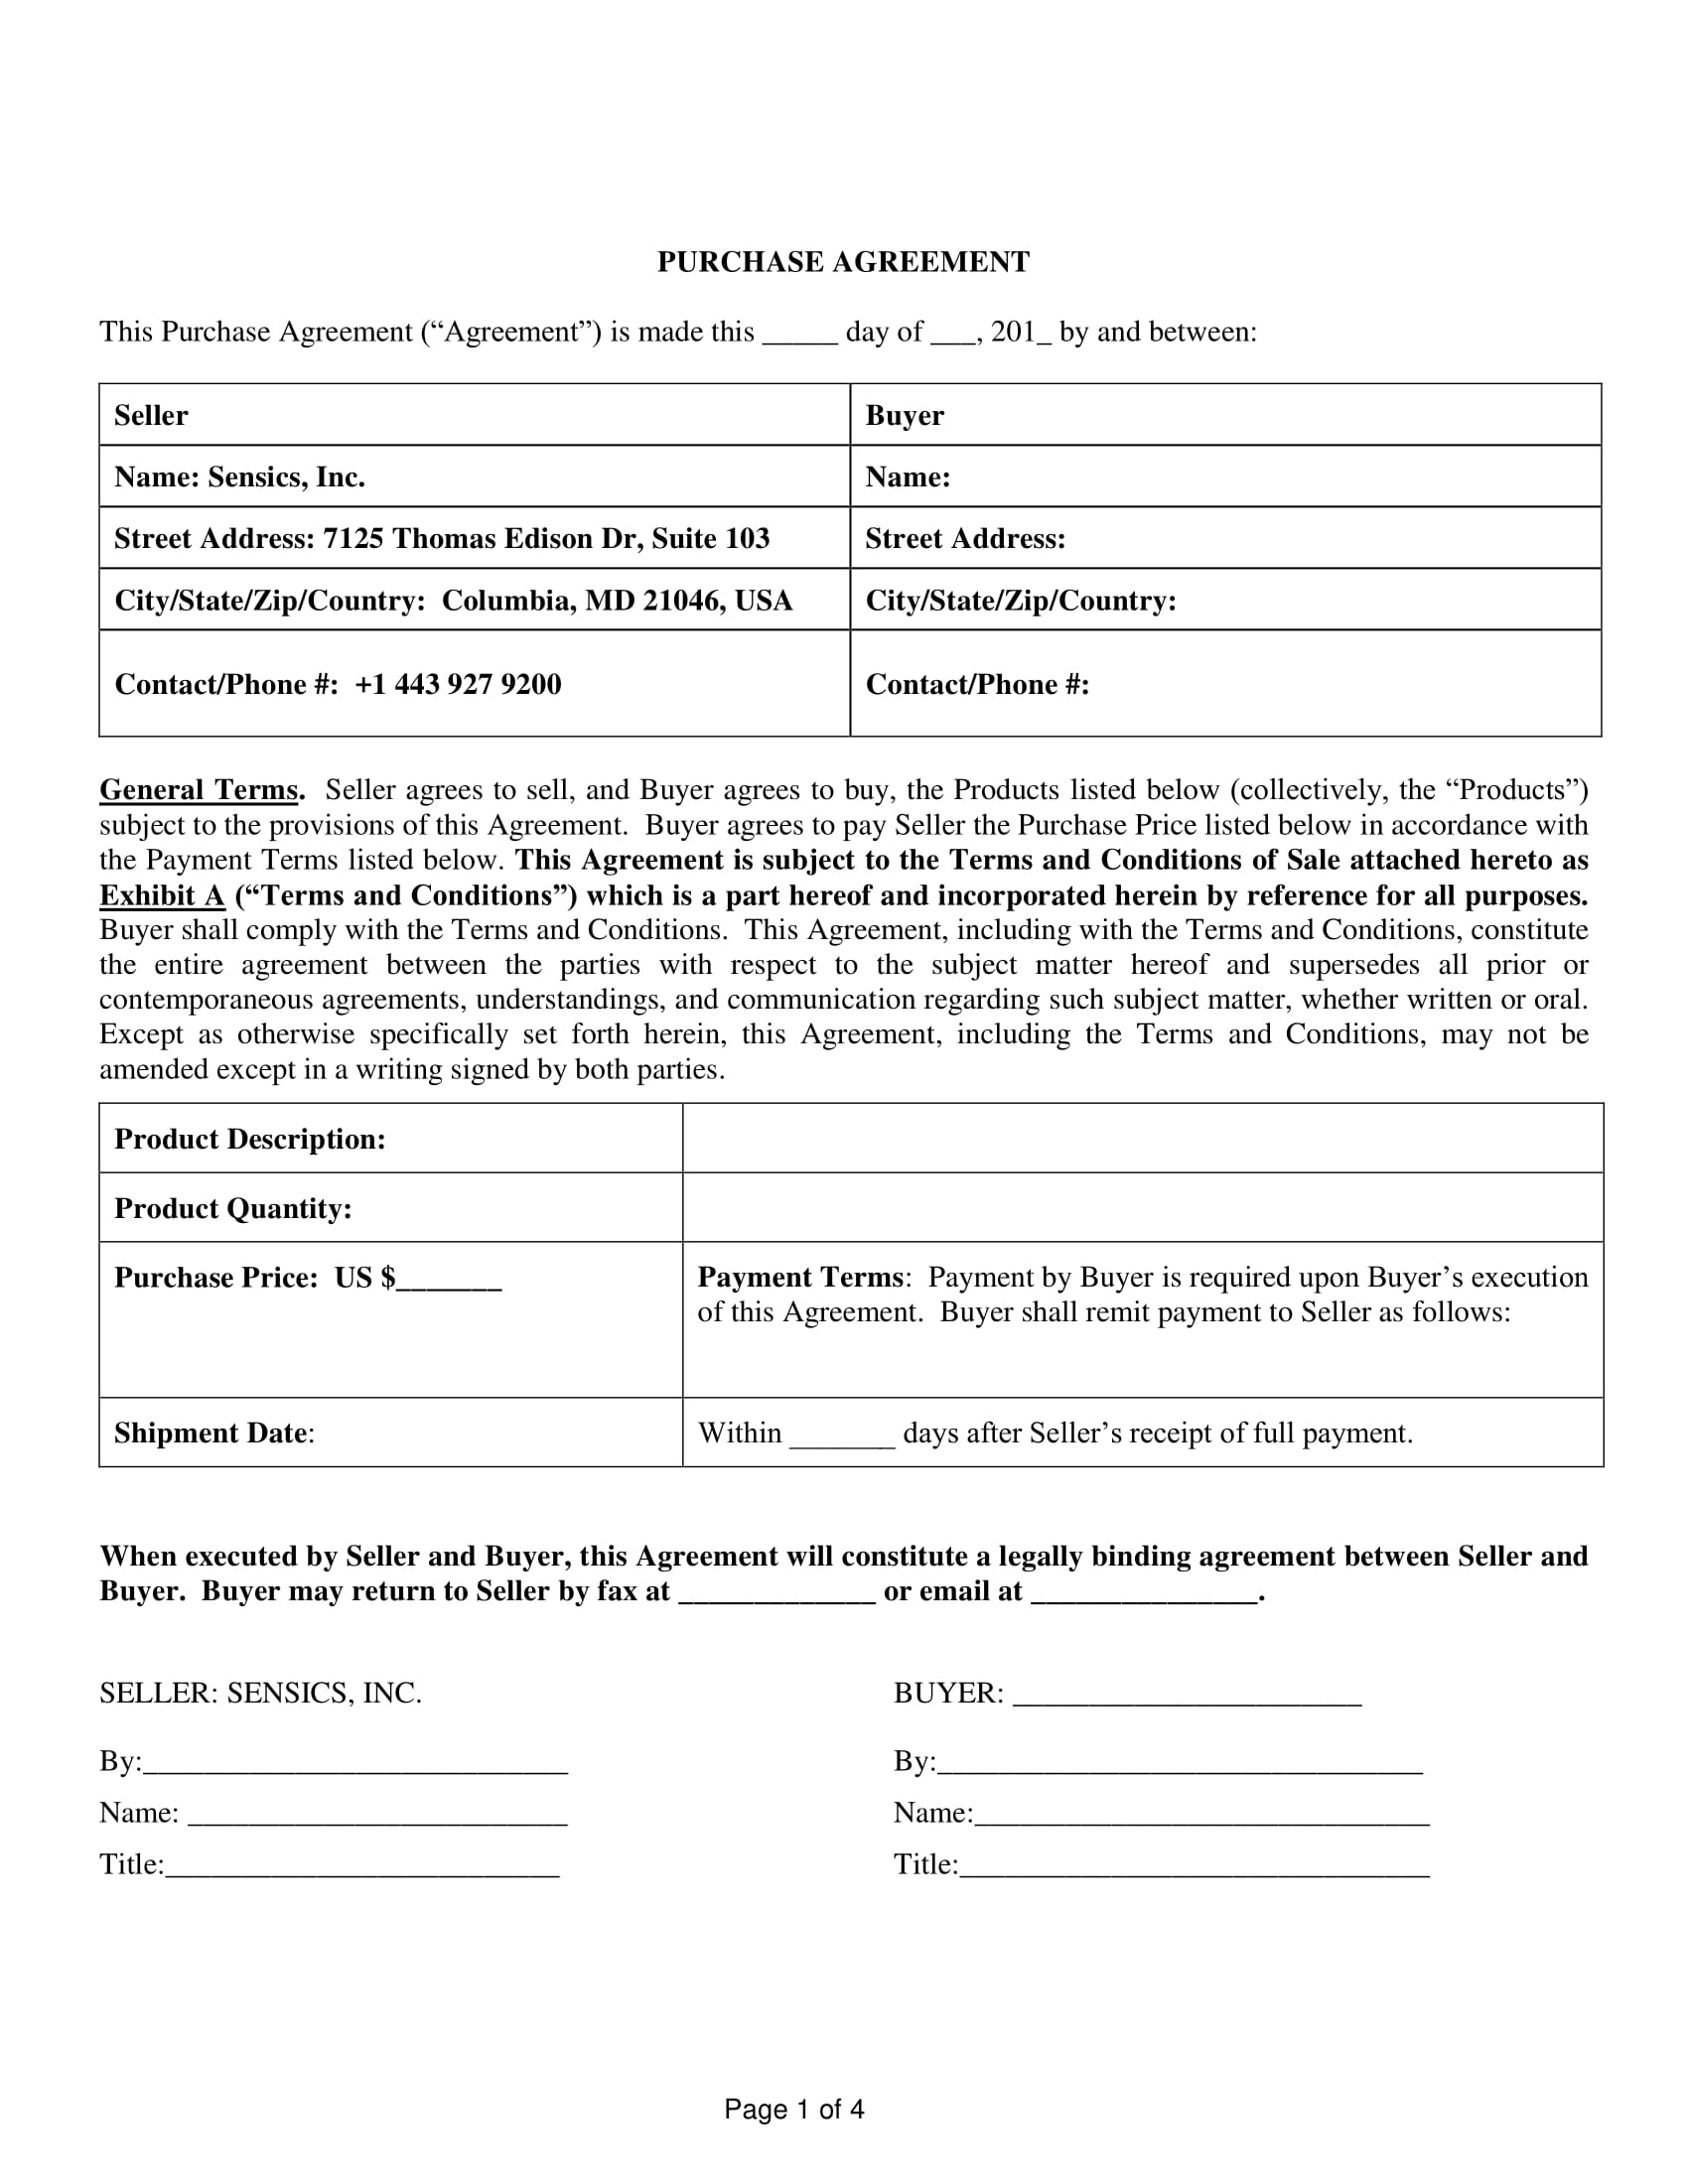 purchase agreement terms